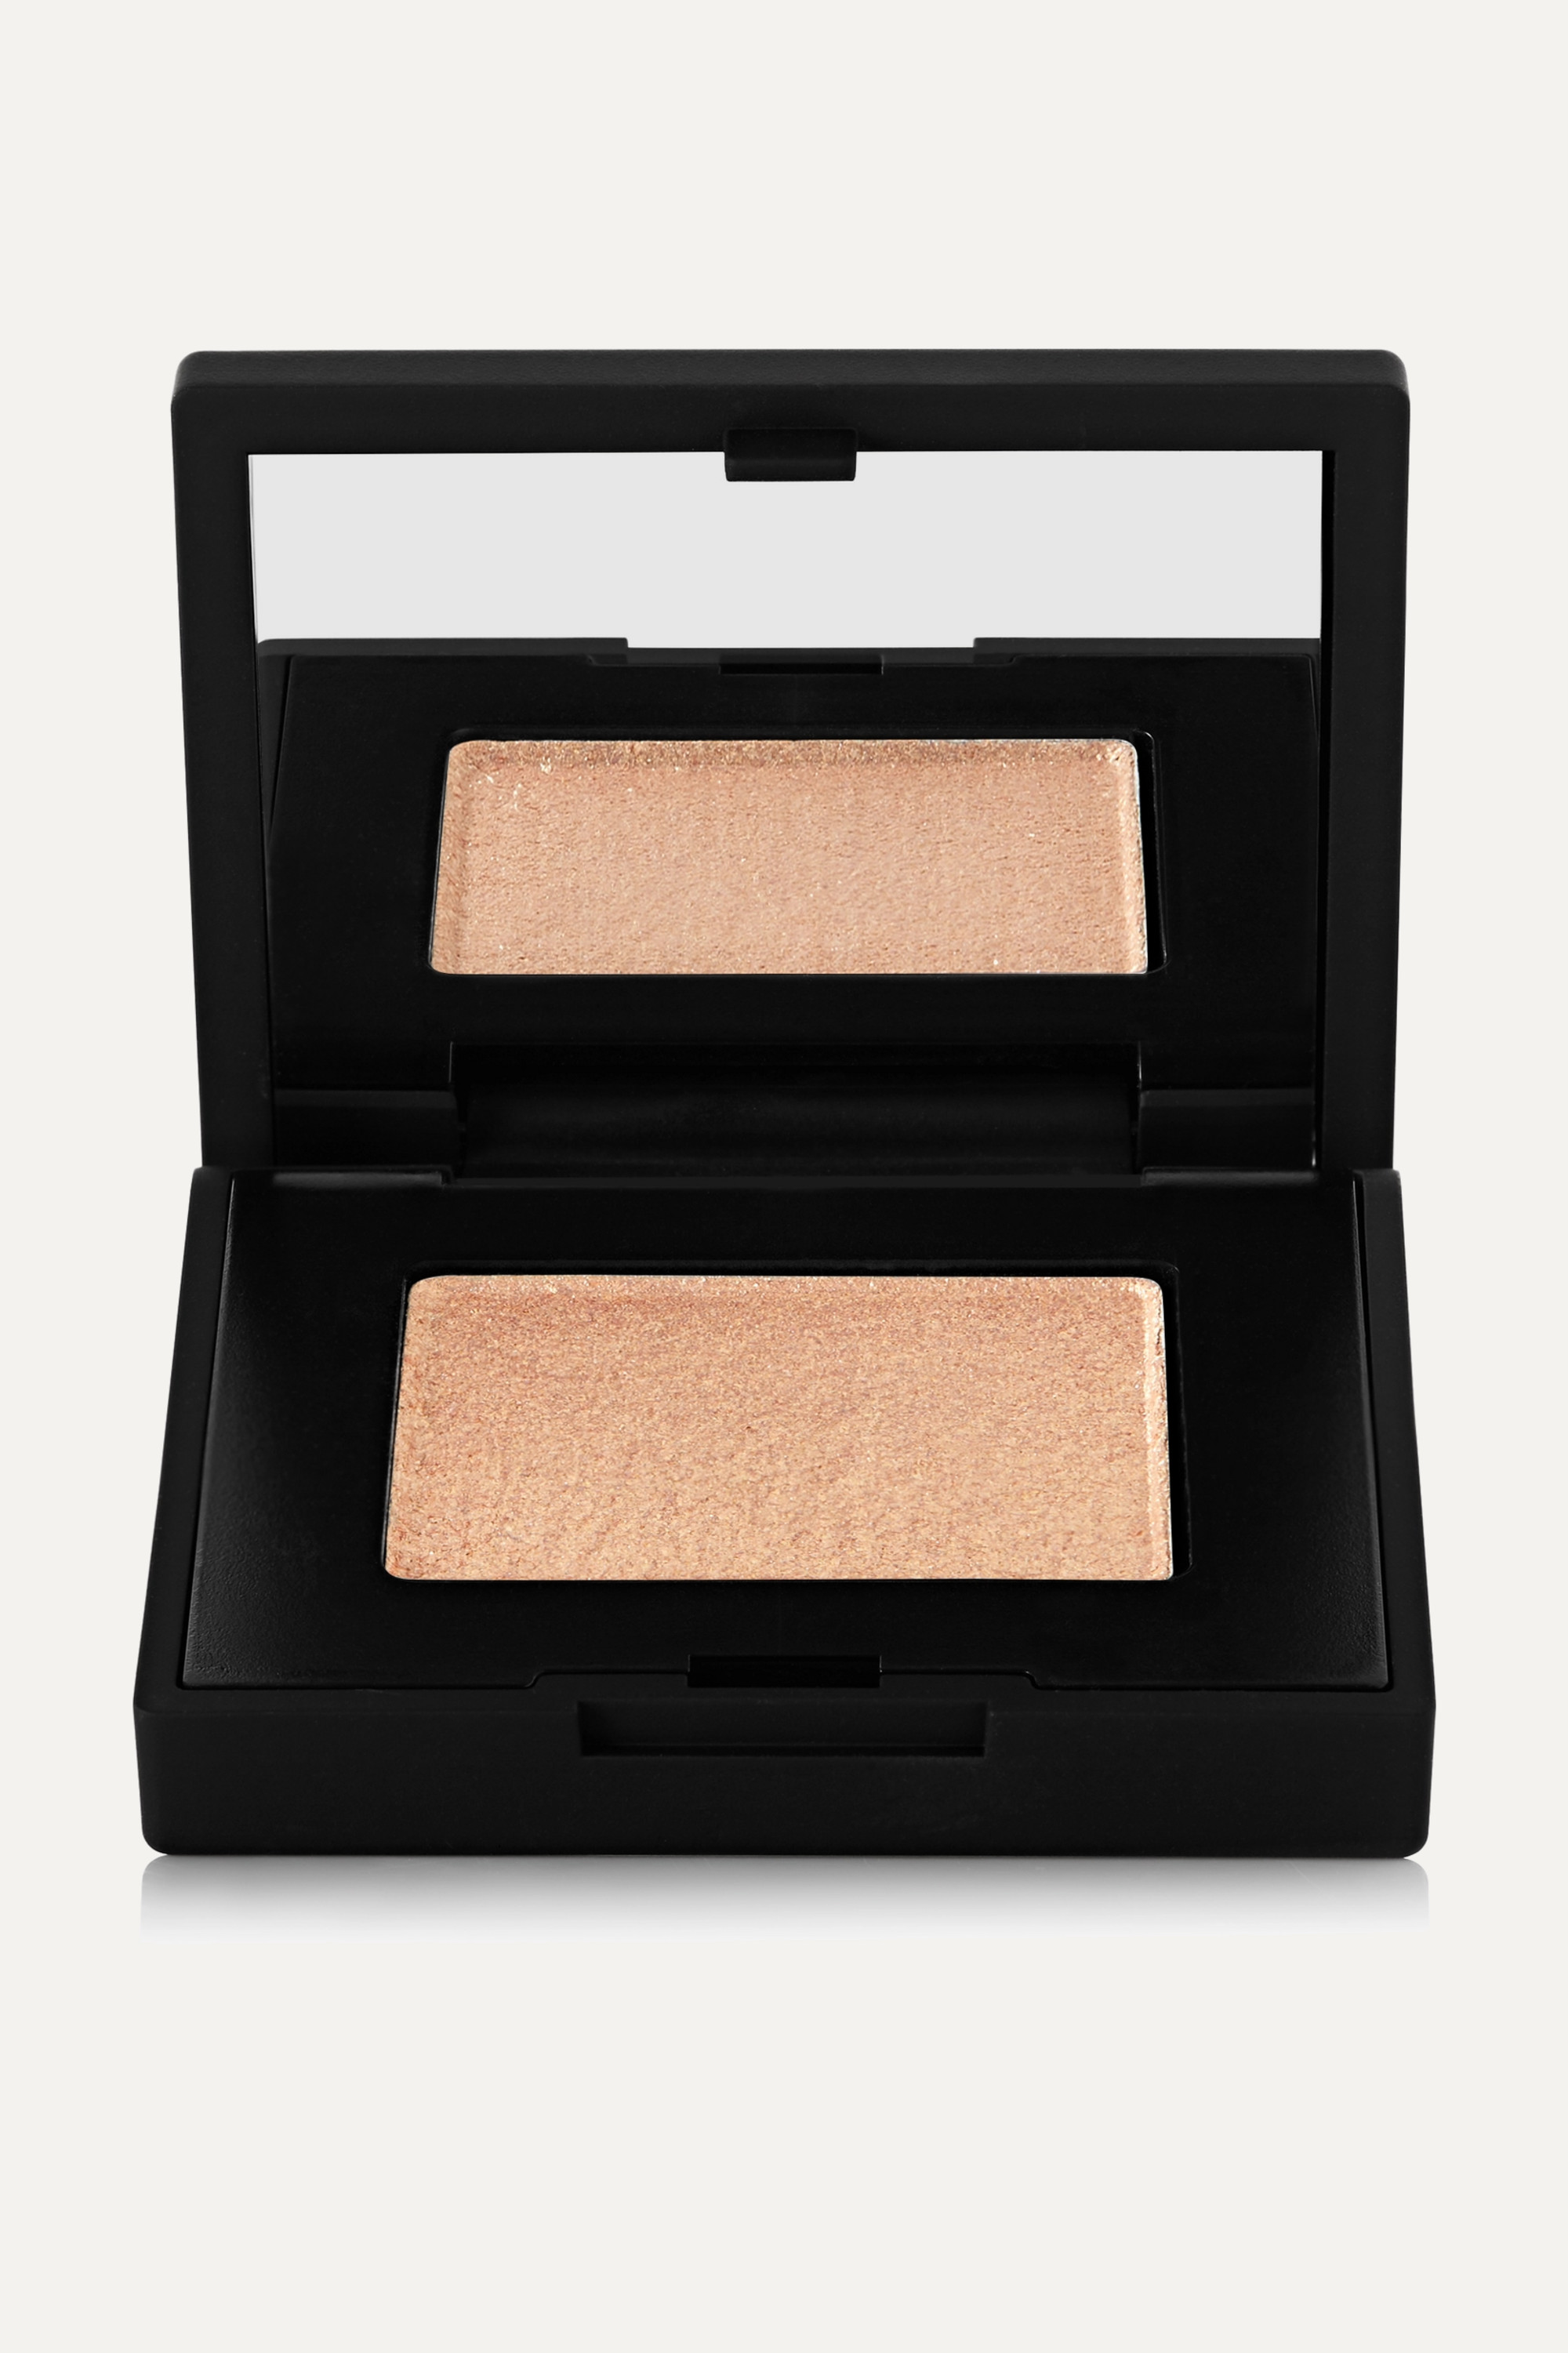 NARS Single Eyeshadow - Río de la Plata